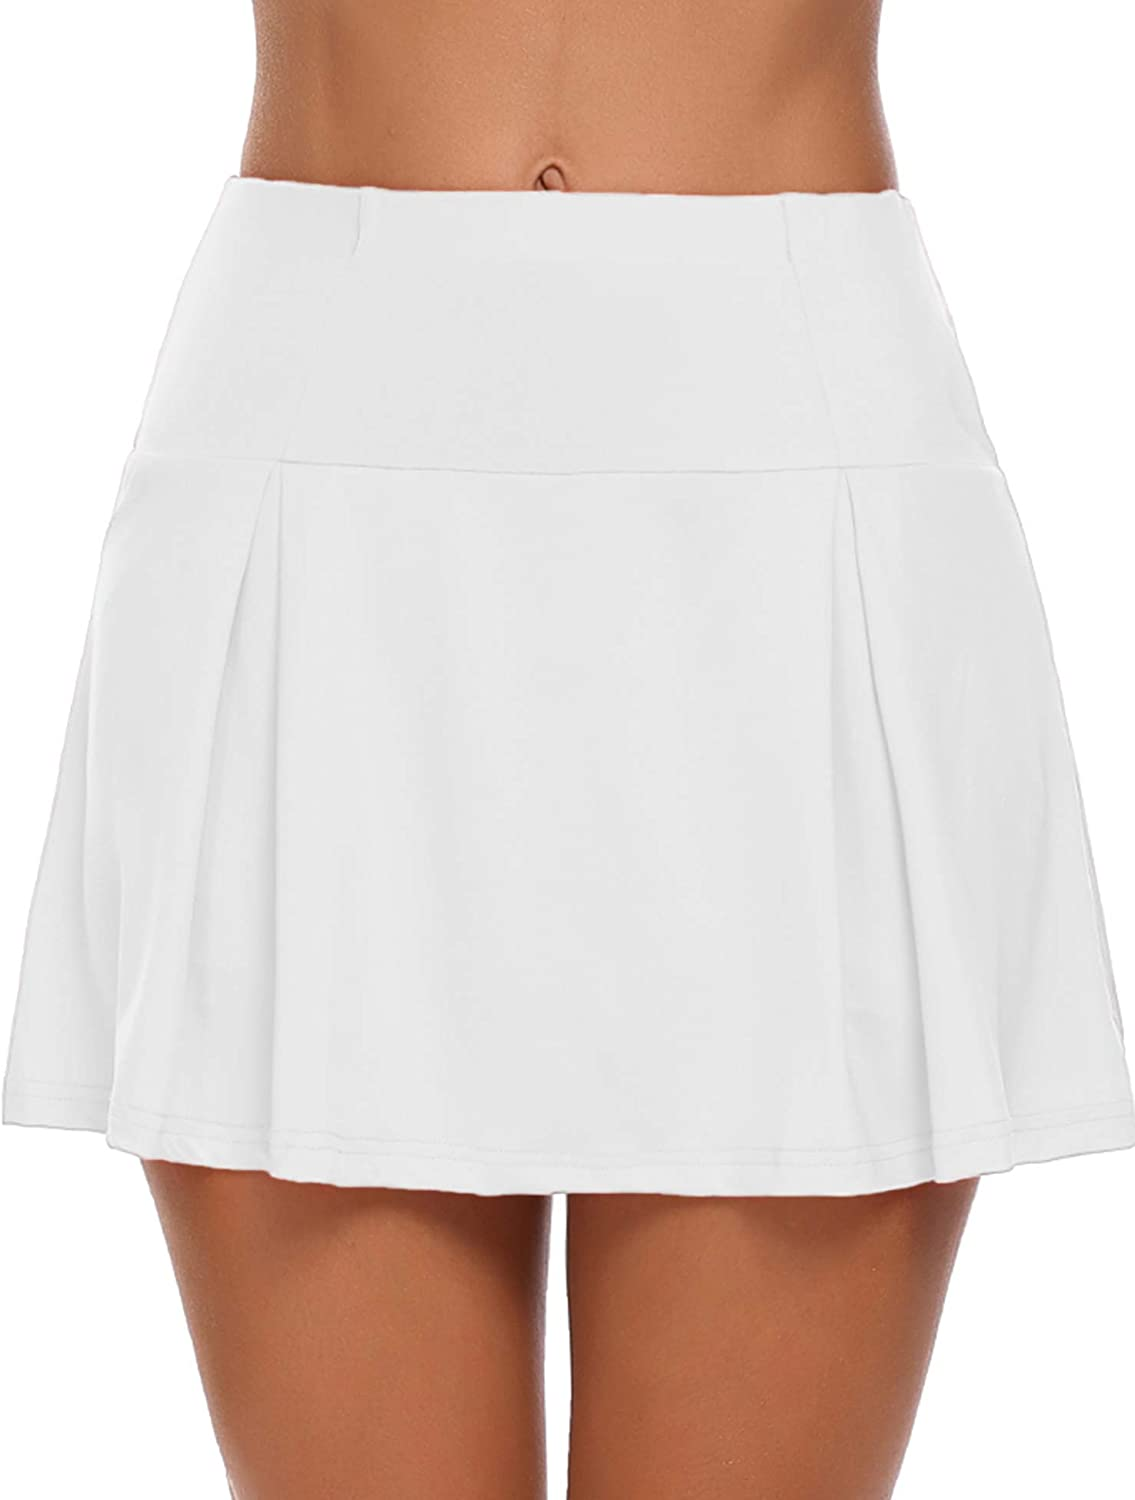 Guteer Women's Active Skirt Athletic Tennis Skort Pleated Stretchy Sports  Skirt Training Running Workout Golf at Amazon Women's Clothing store